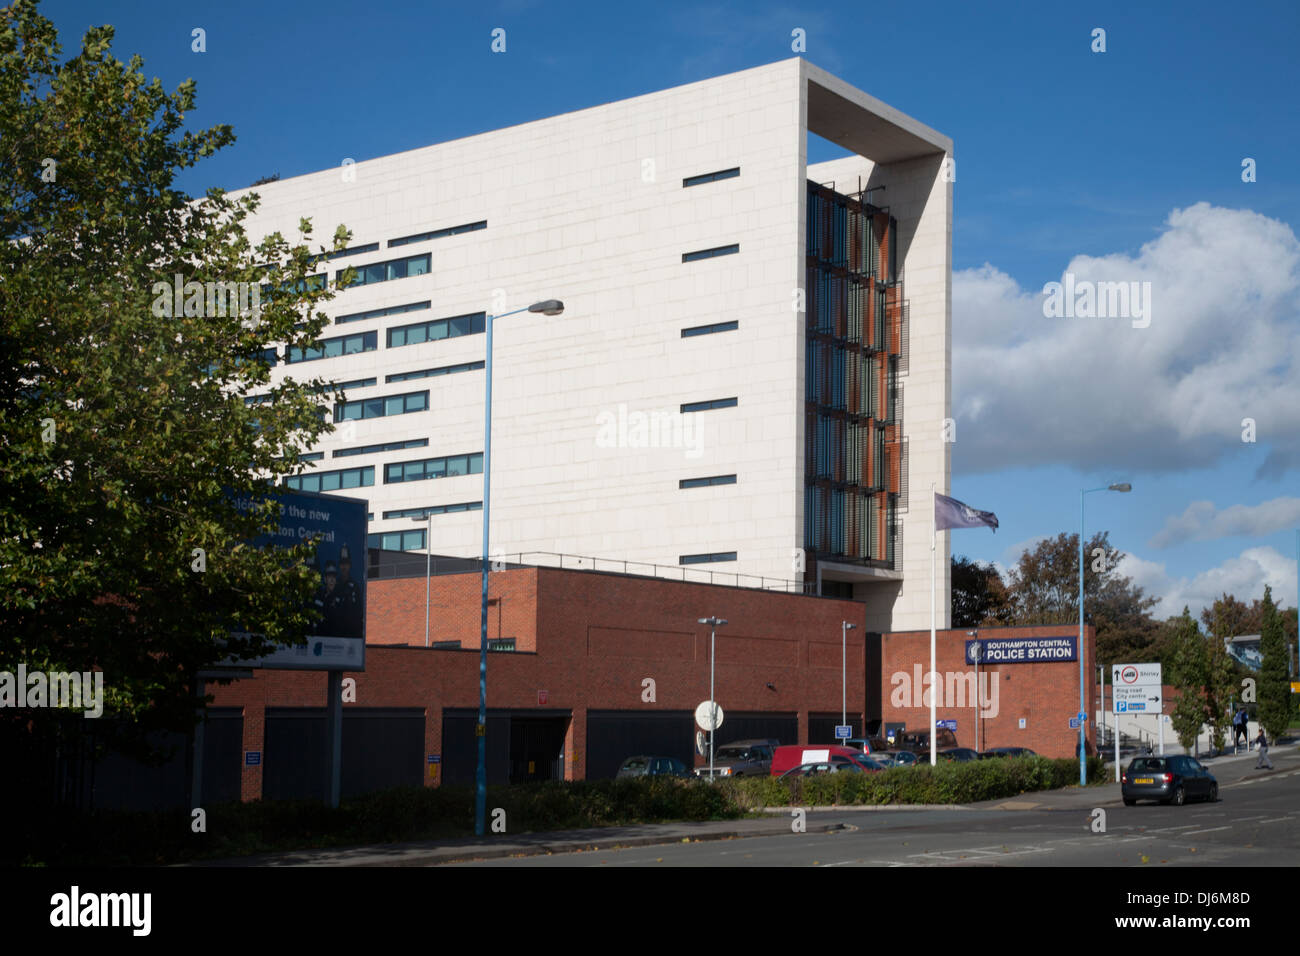 southampton central police station southampton hampshire england - Stock Image